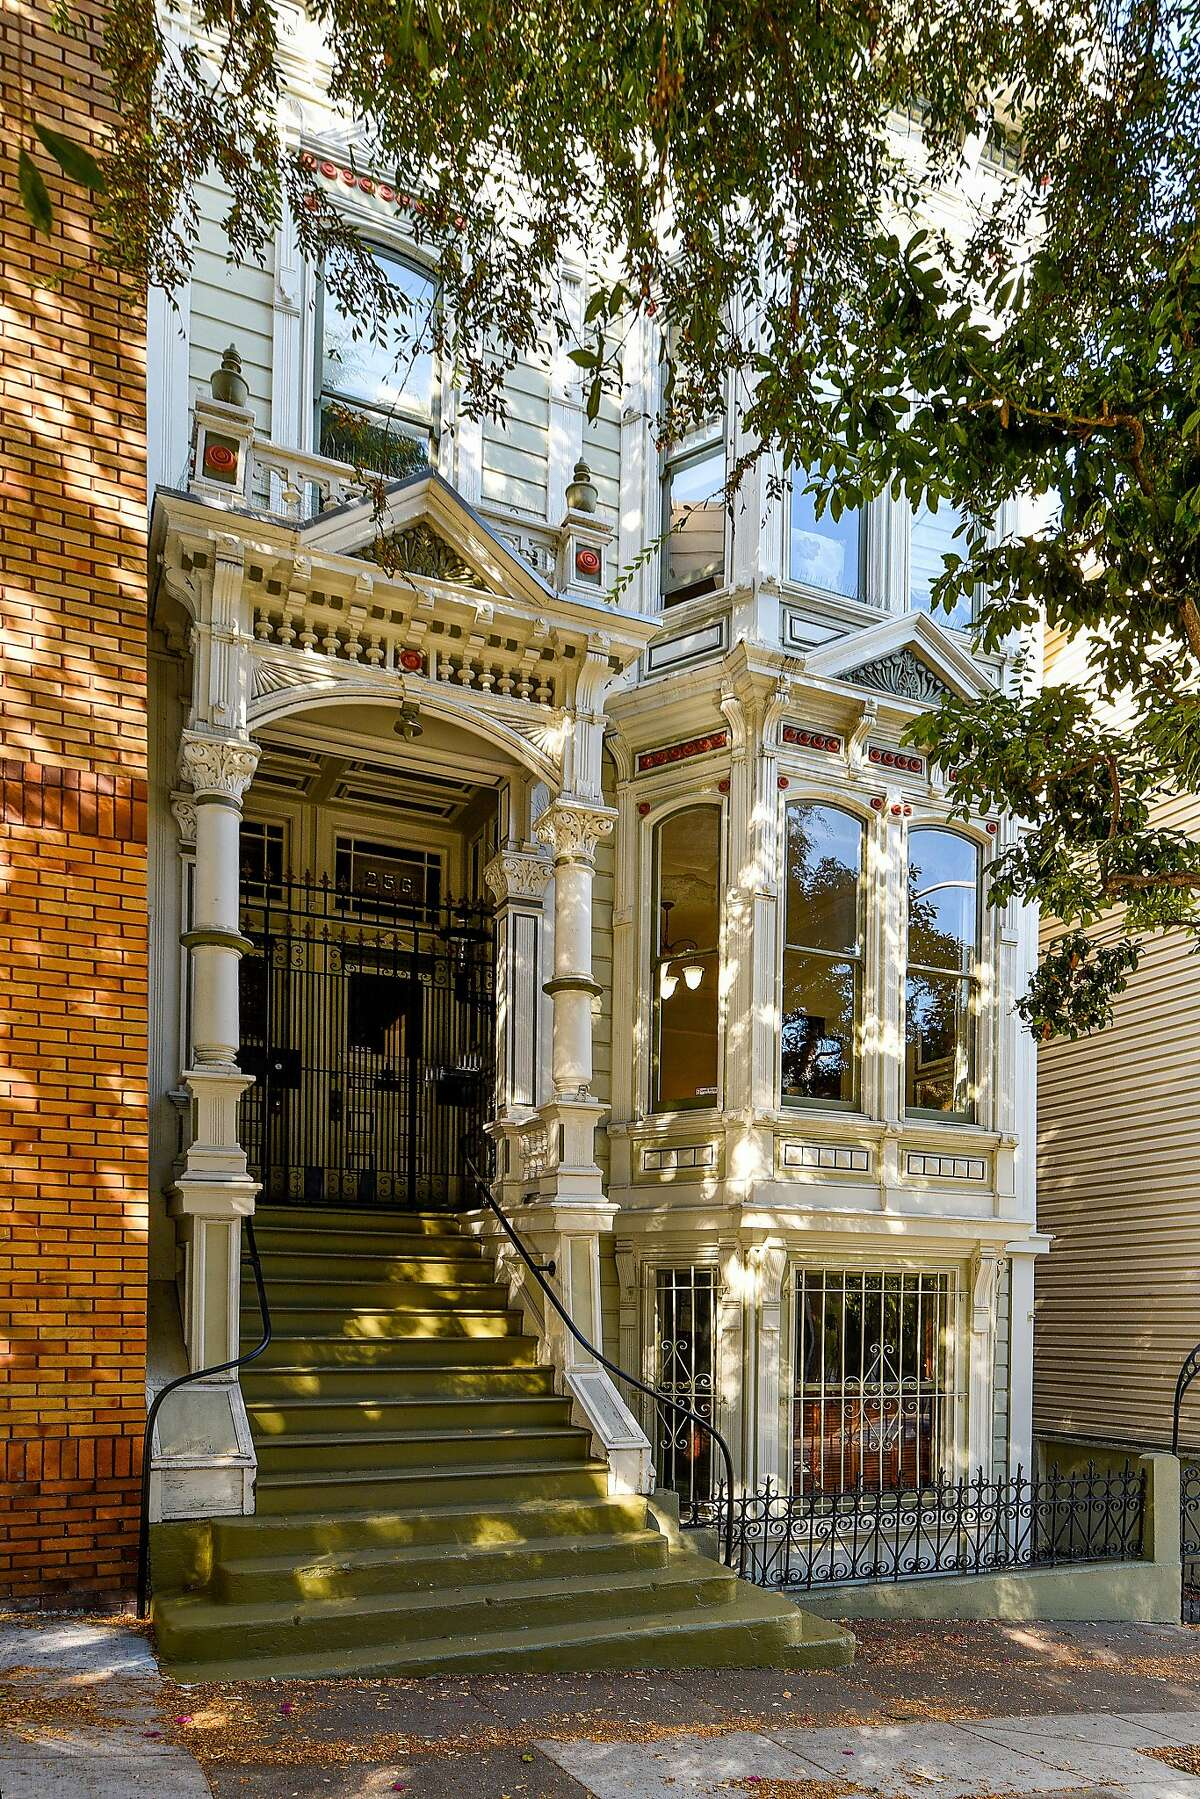 One of many properties in San Francisco that had a recent price cut, this Victorian condo at 256 Page in Hayes Valley was recently reduced by $100,000 to $1,595,000.